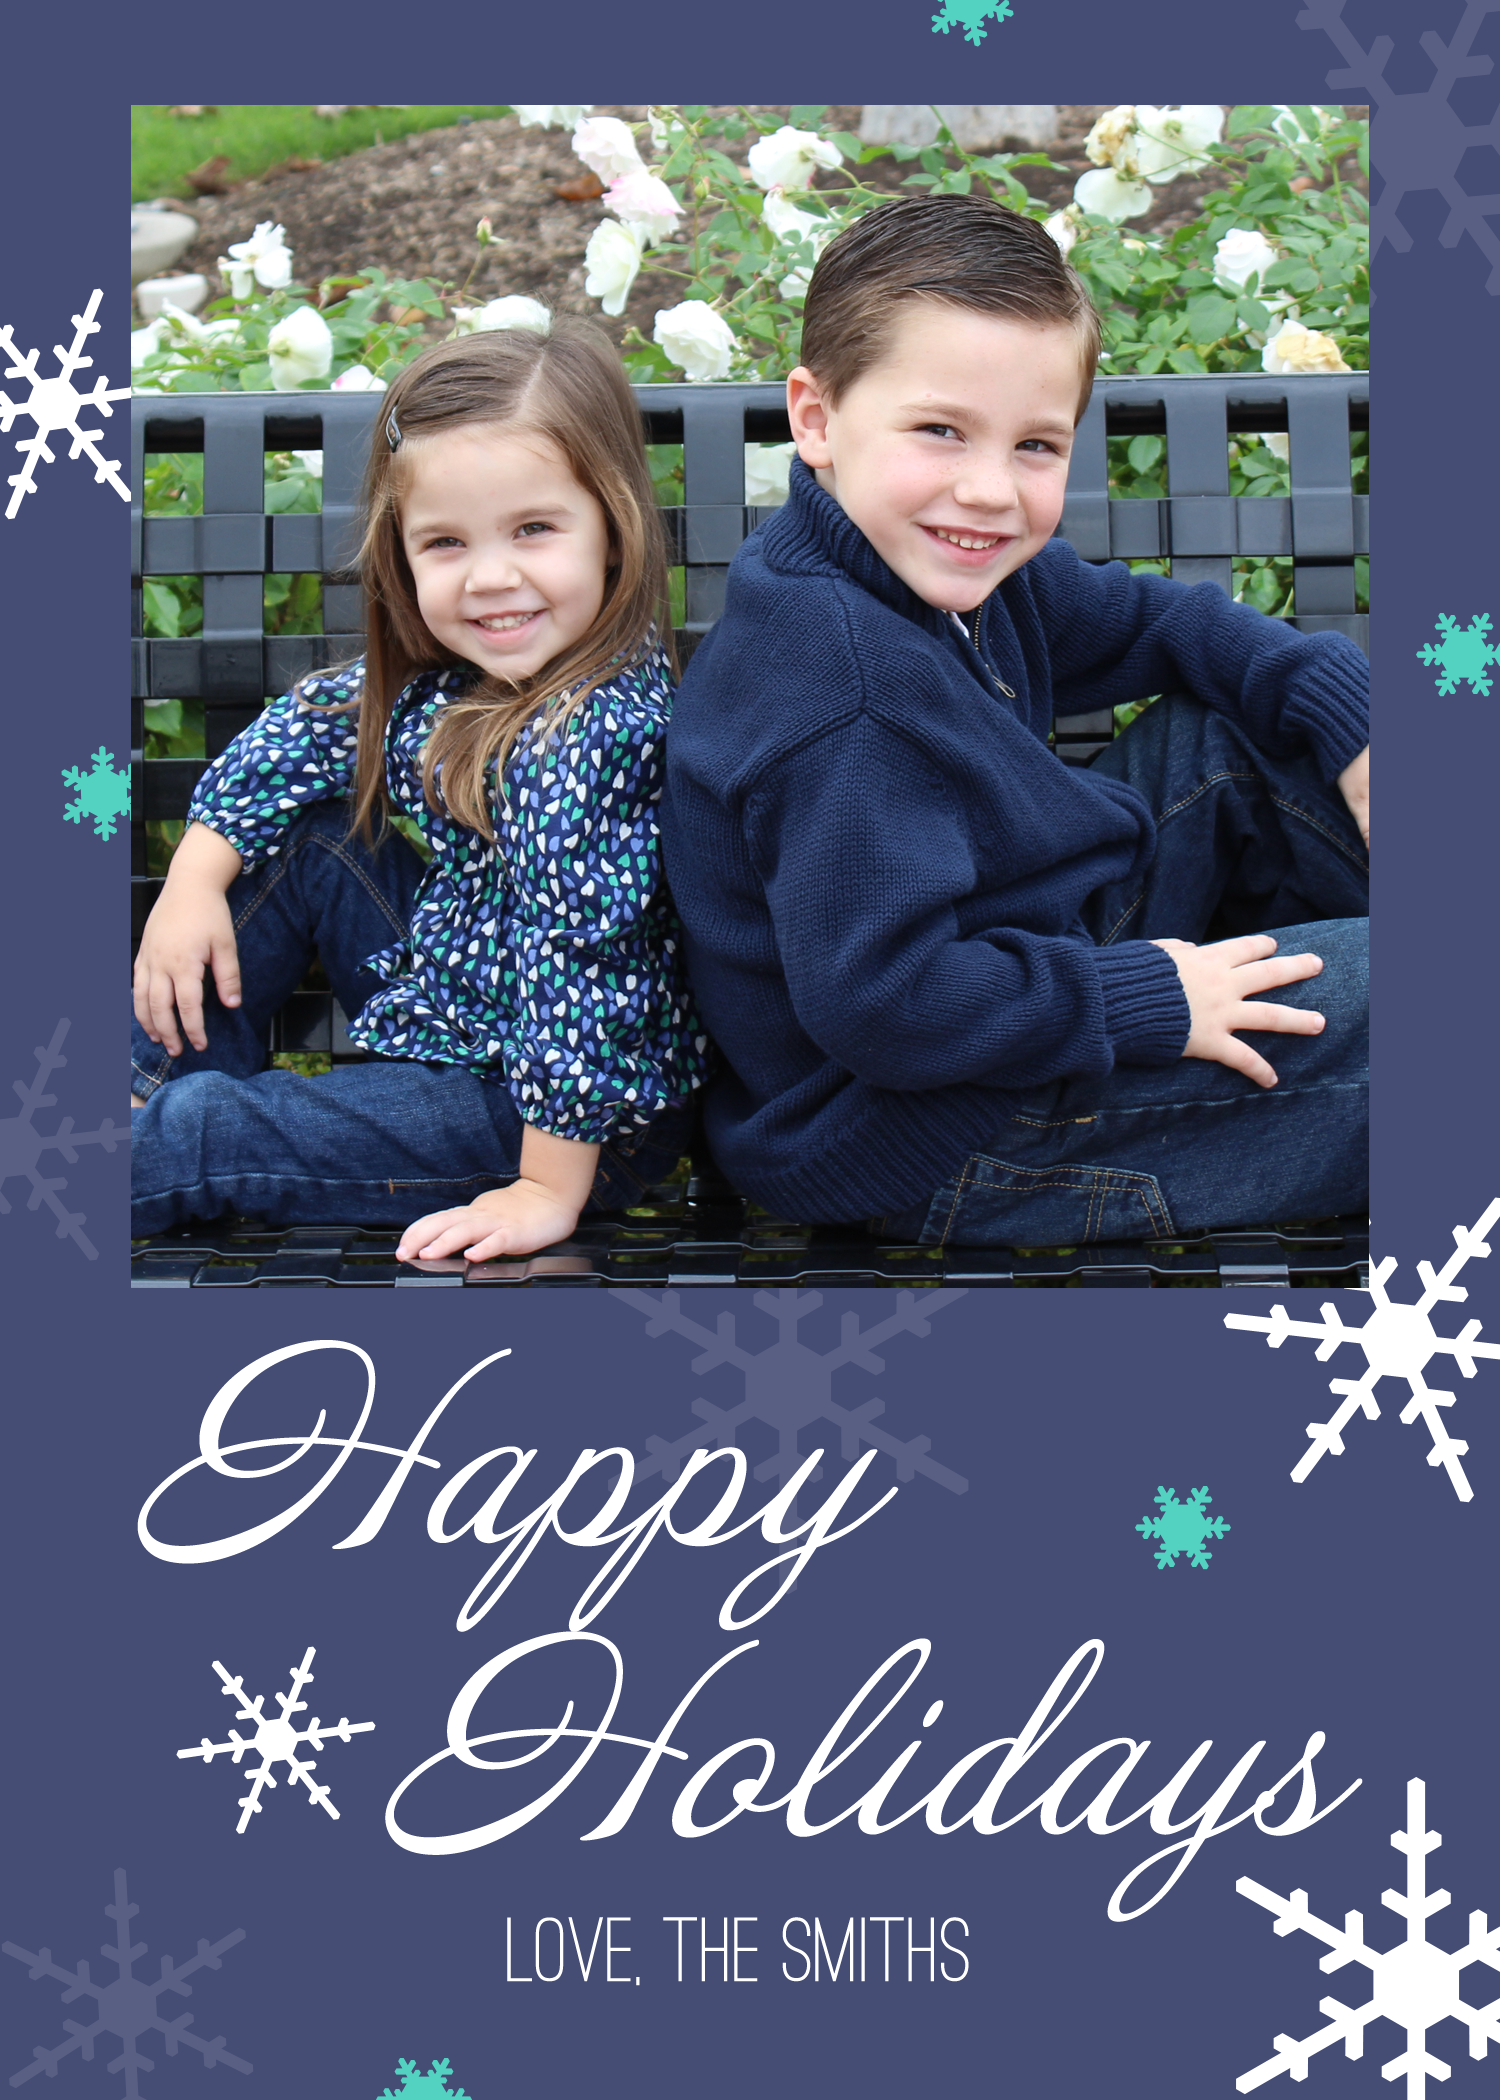 FREE Printable Holiday Photo Card PLUS Pixlr Video Tutorial - Card template free: photo insert christmas cards